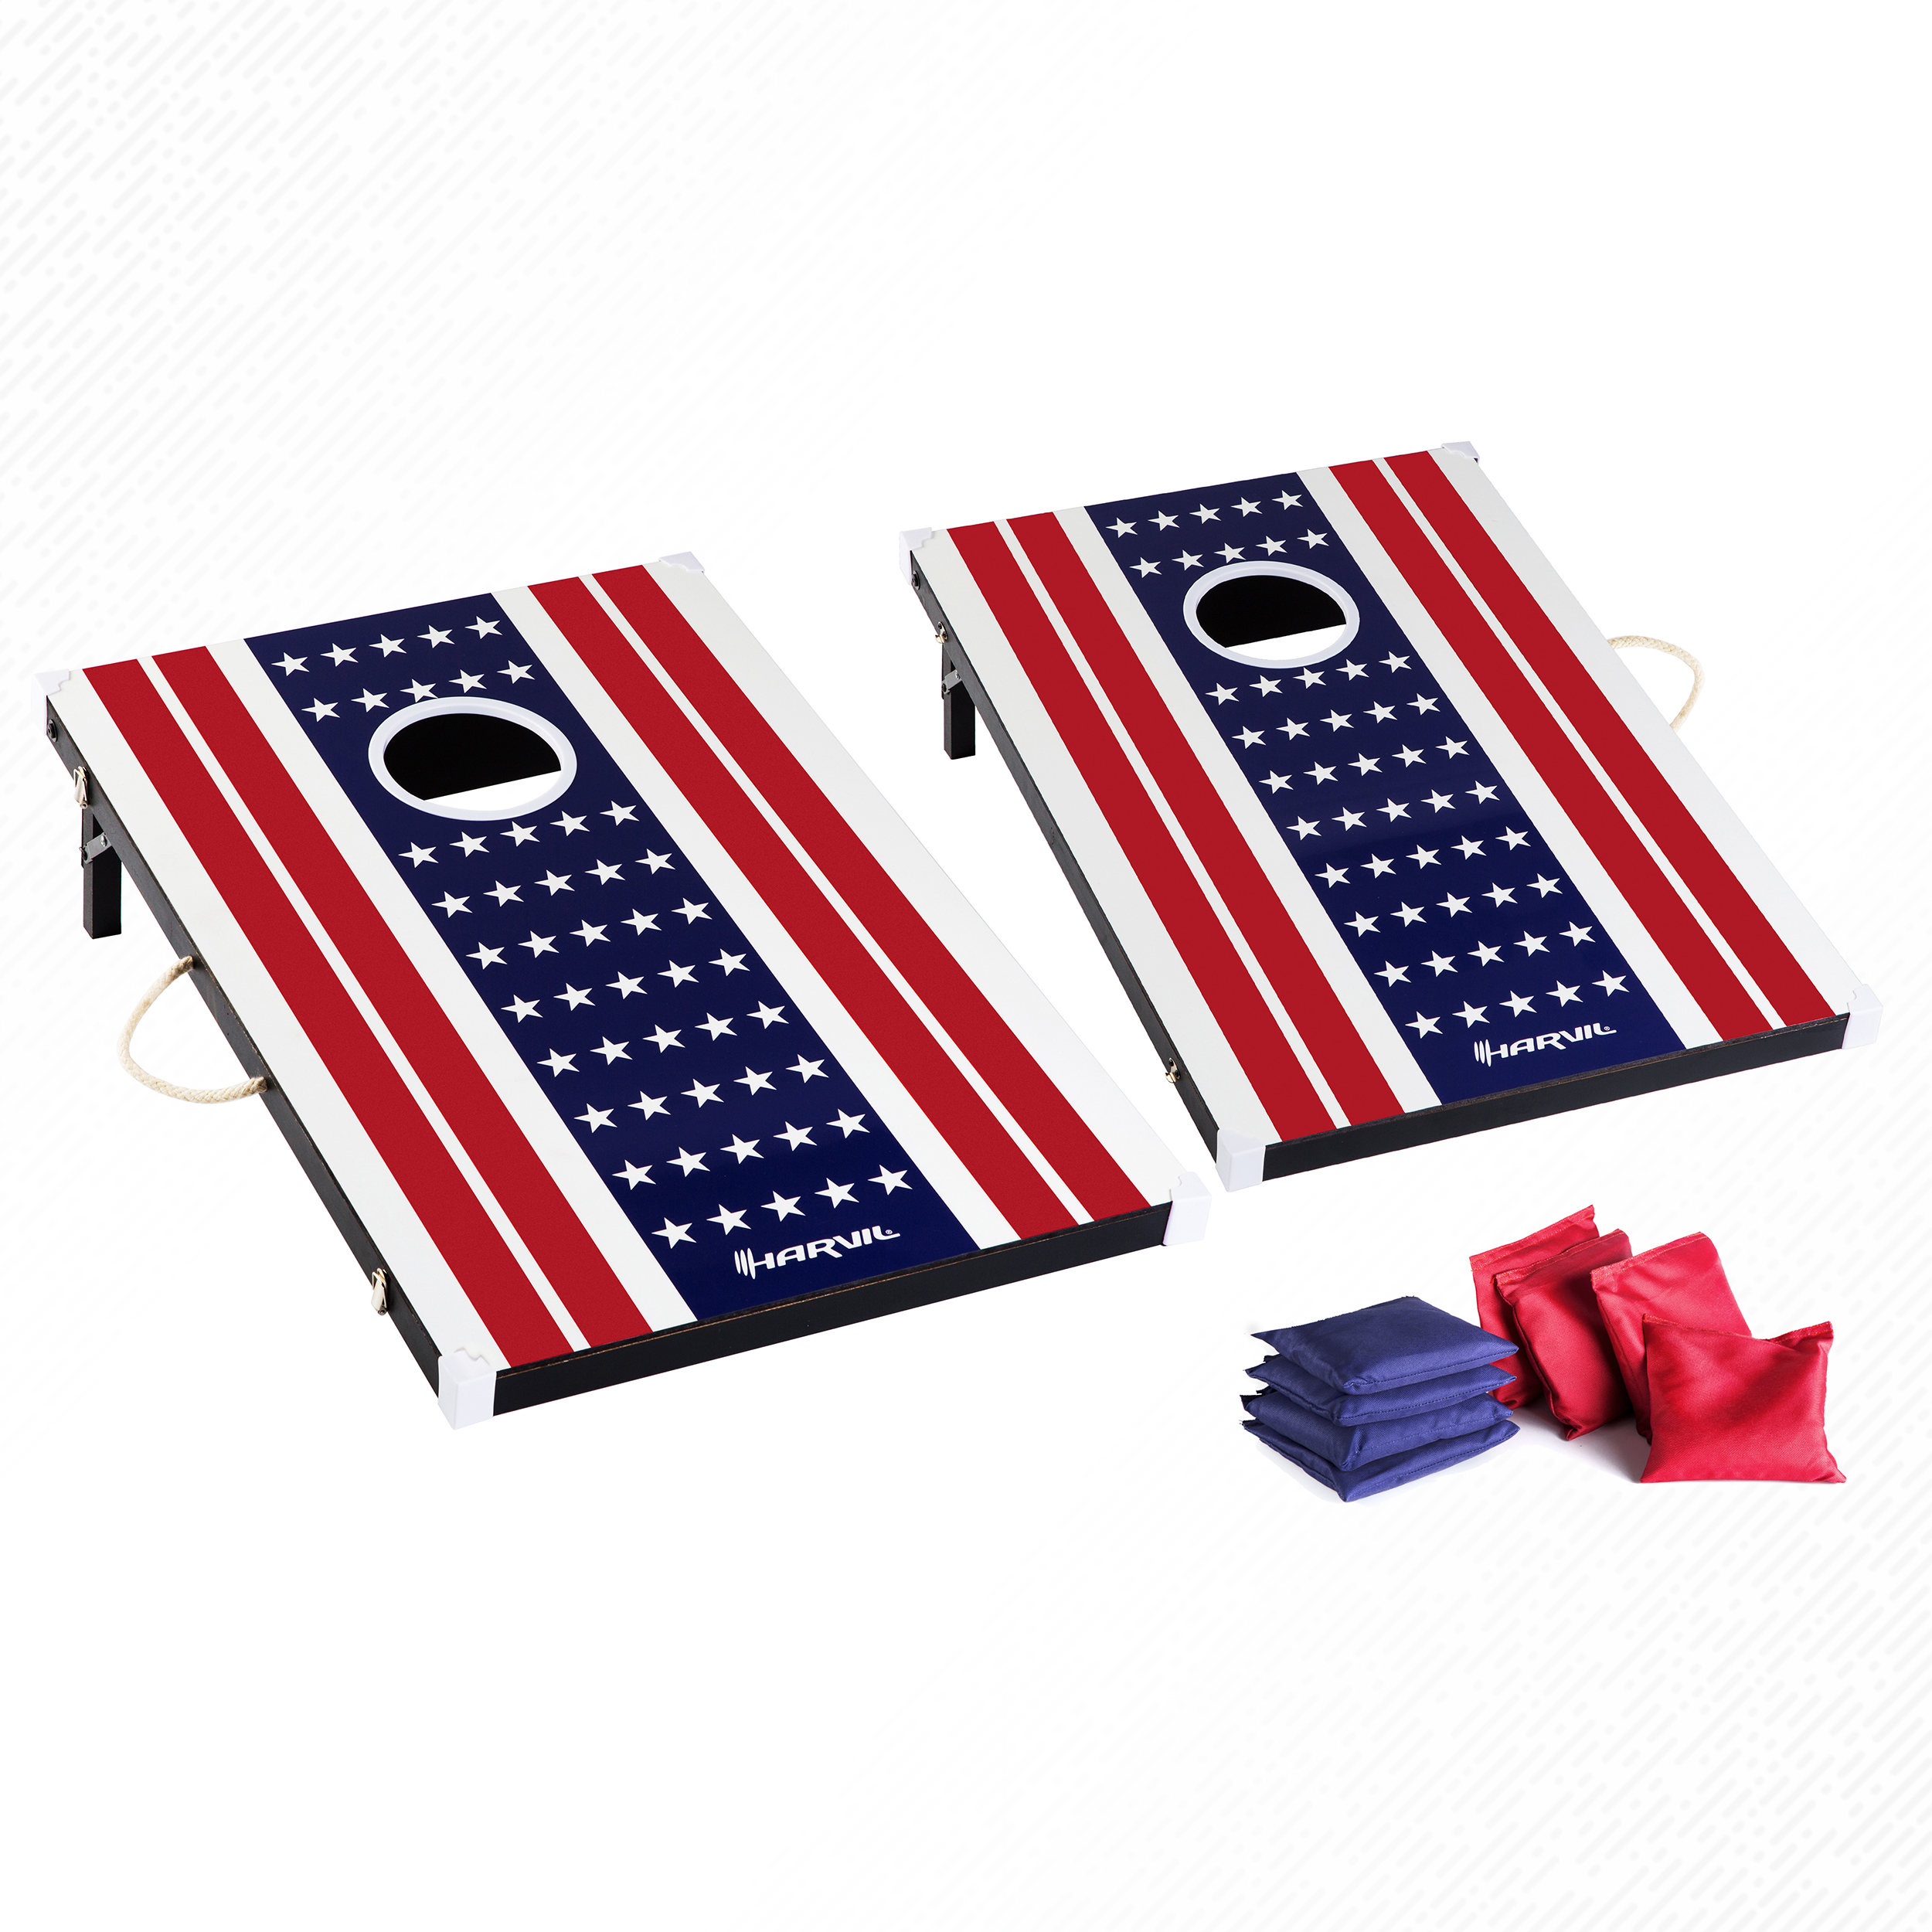 Harvil Cornhole Game Set - US Flag. Includes 8 Double-Lined Bean Bags